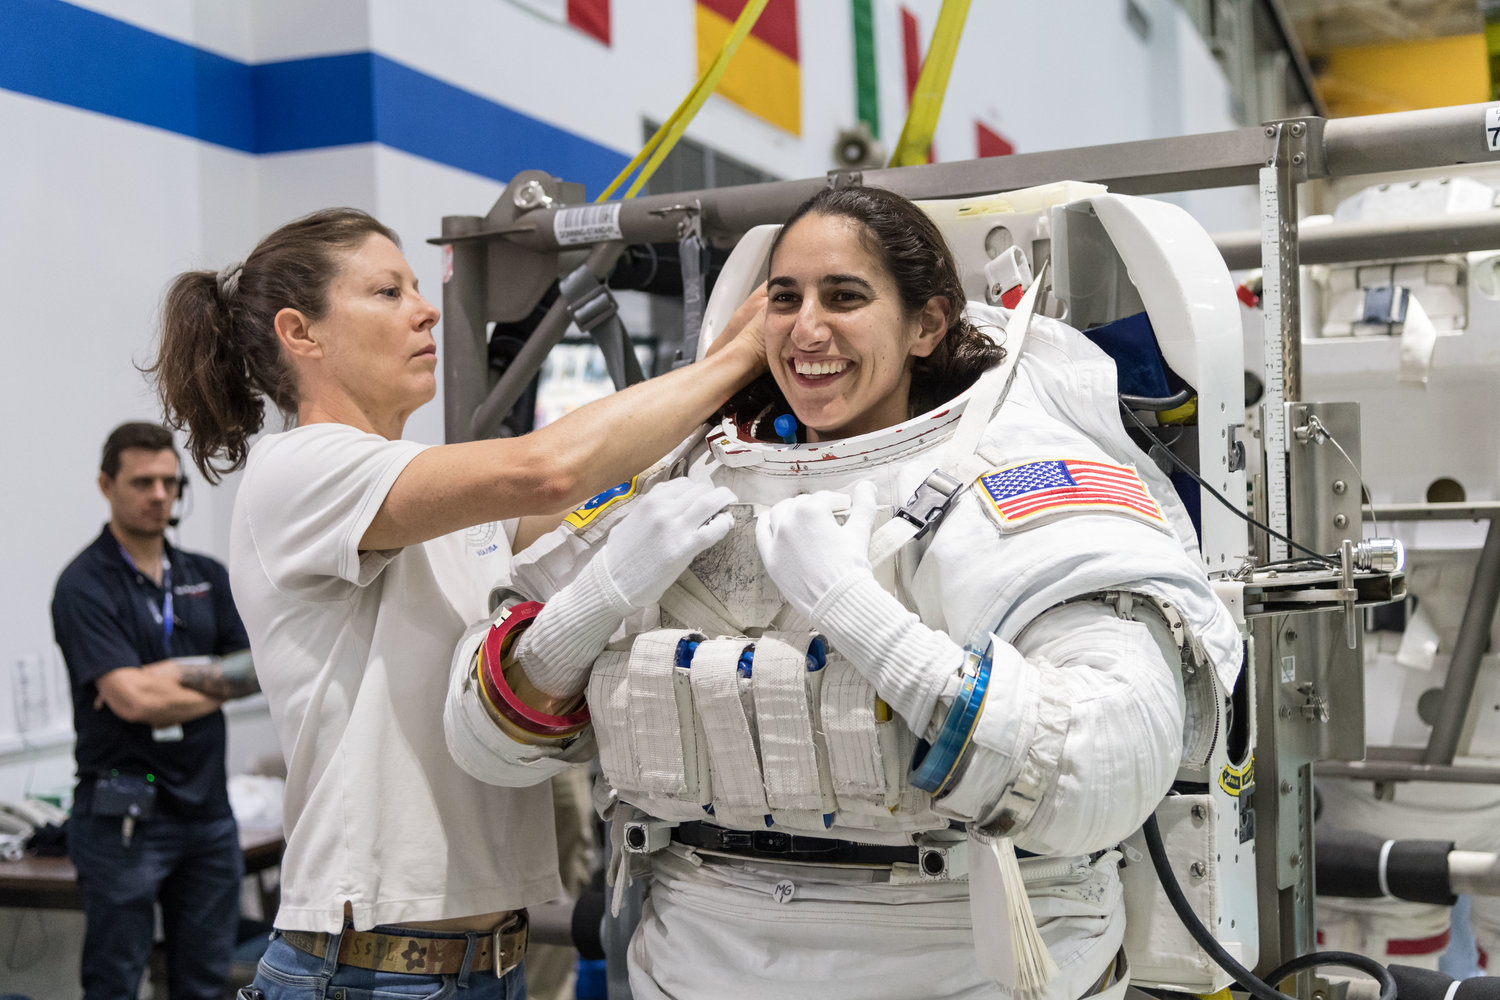 Moghbeli was helped into a spacesuit before underwater spacewalk training at the Johnson Space Center's Neutral Buoyancy Laboratory in Houston.